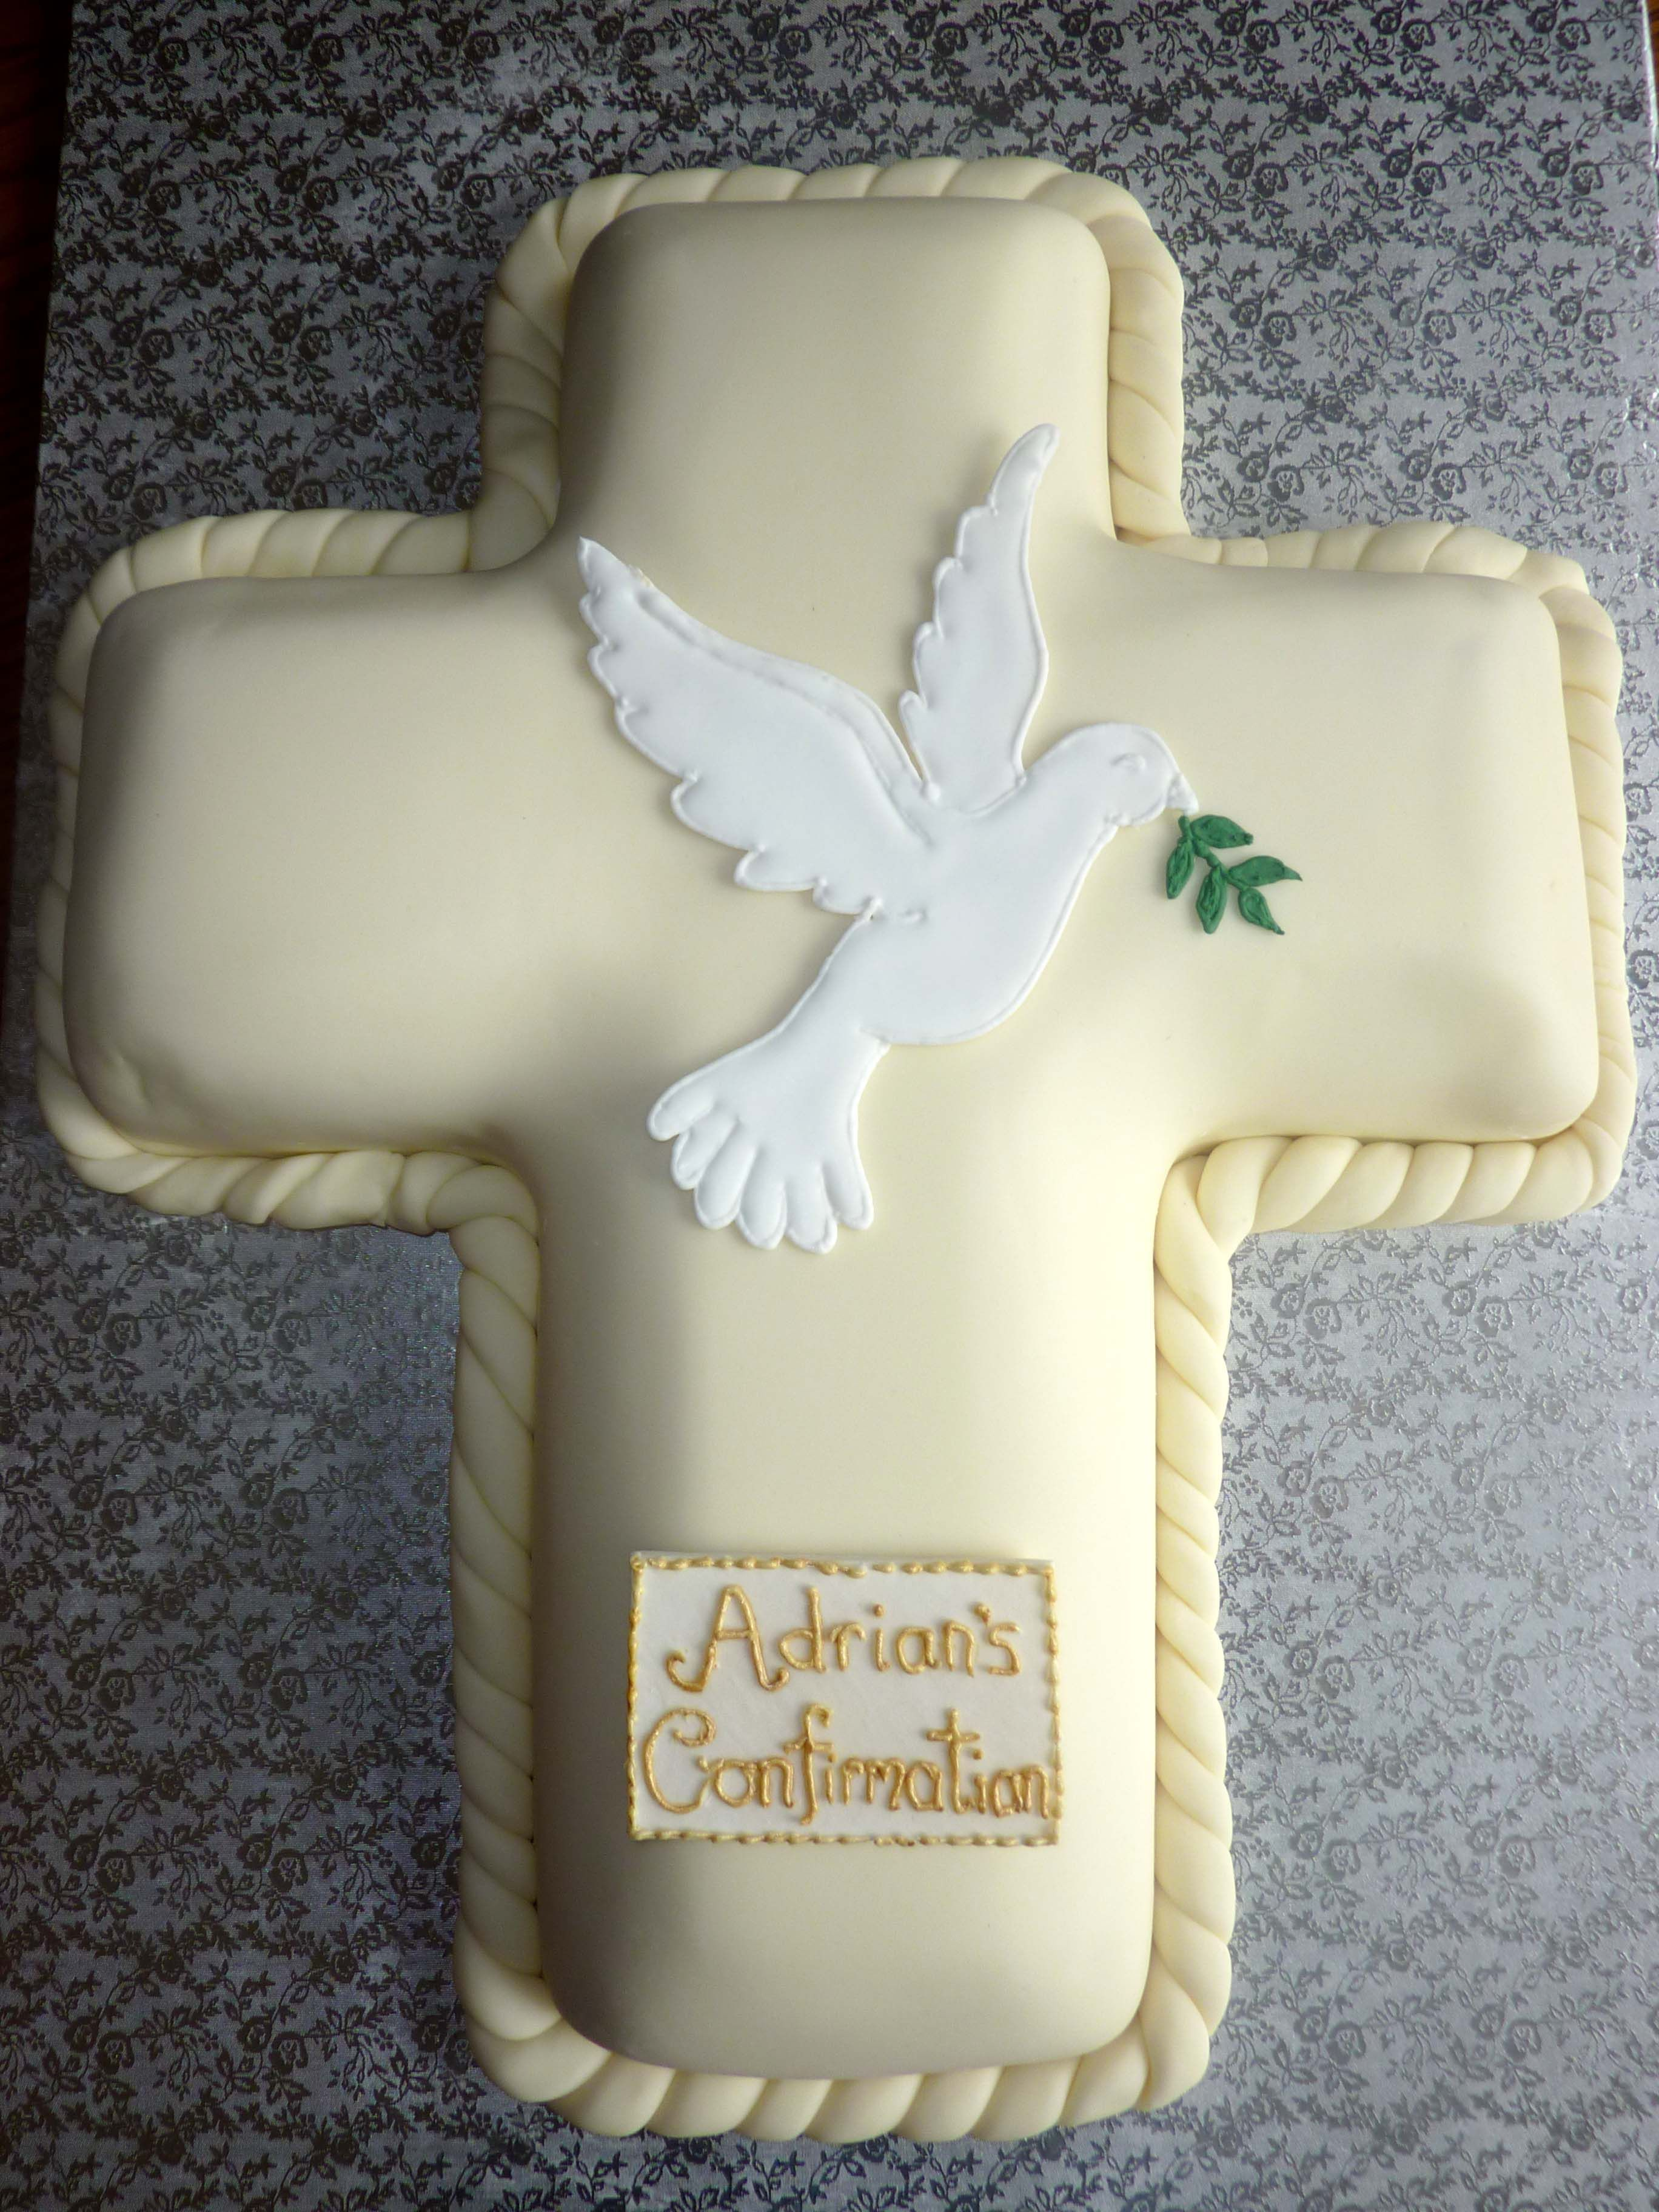 Confirmation Cross Cake with Royal Icing Dove Topper | cake